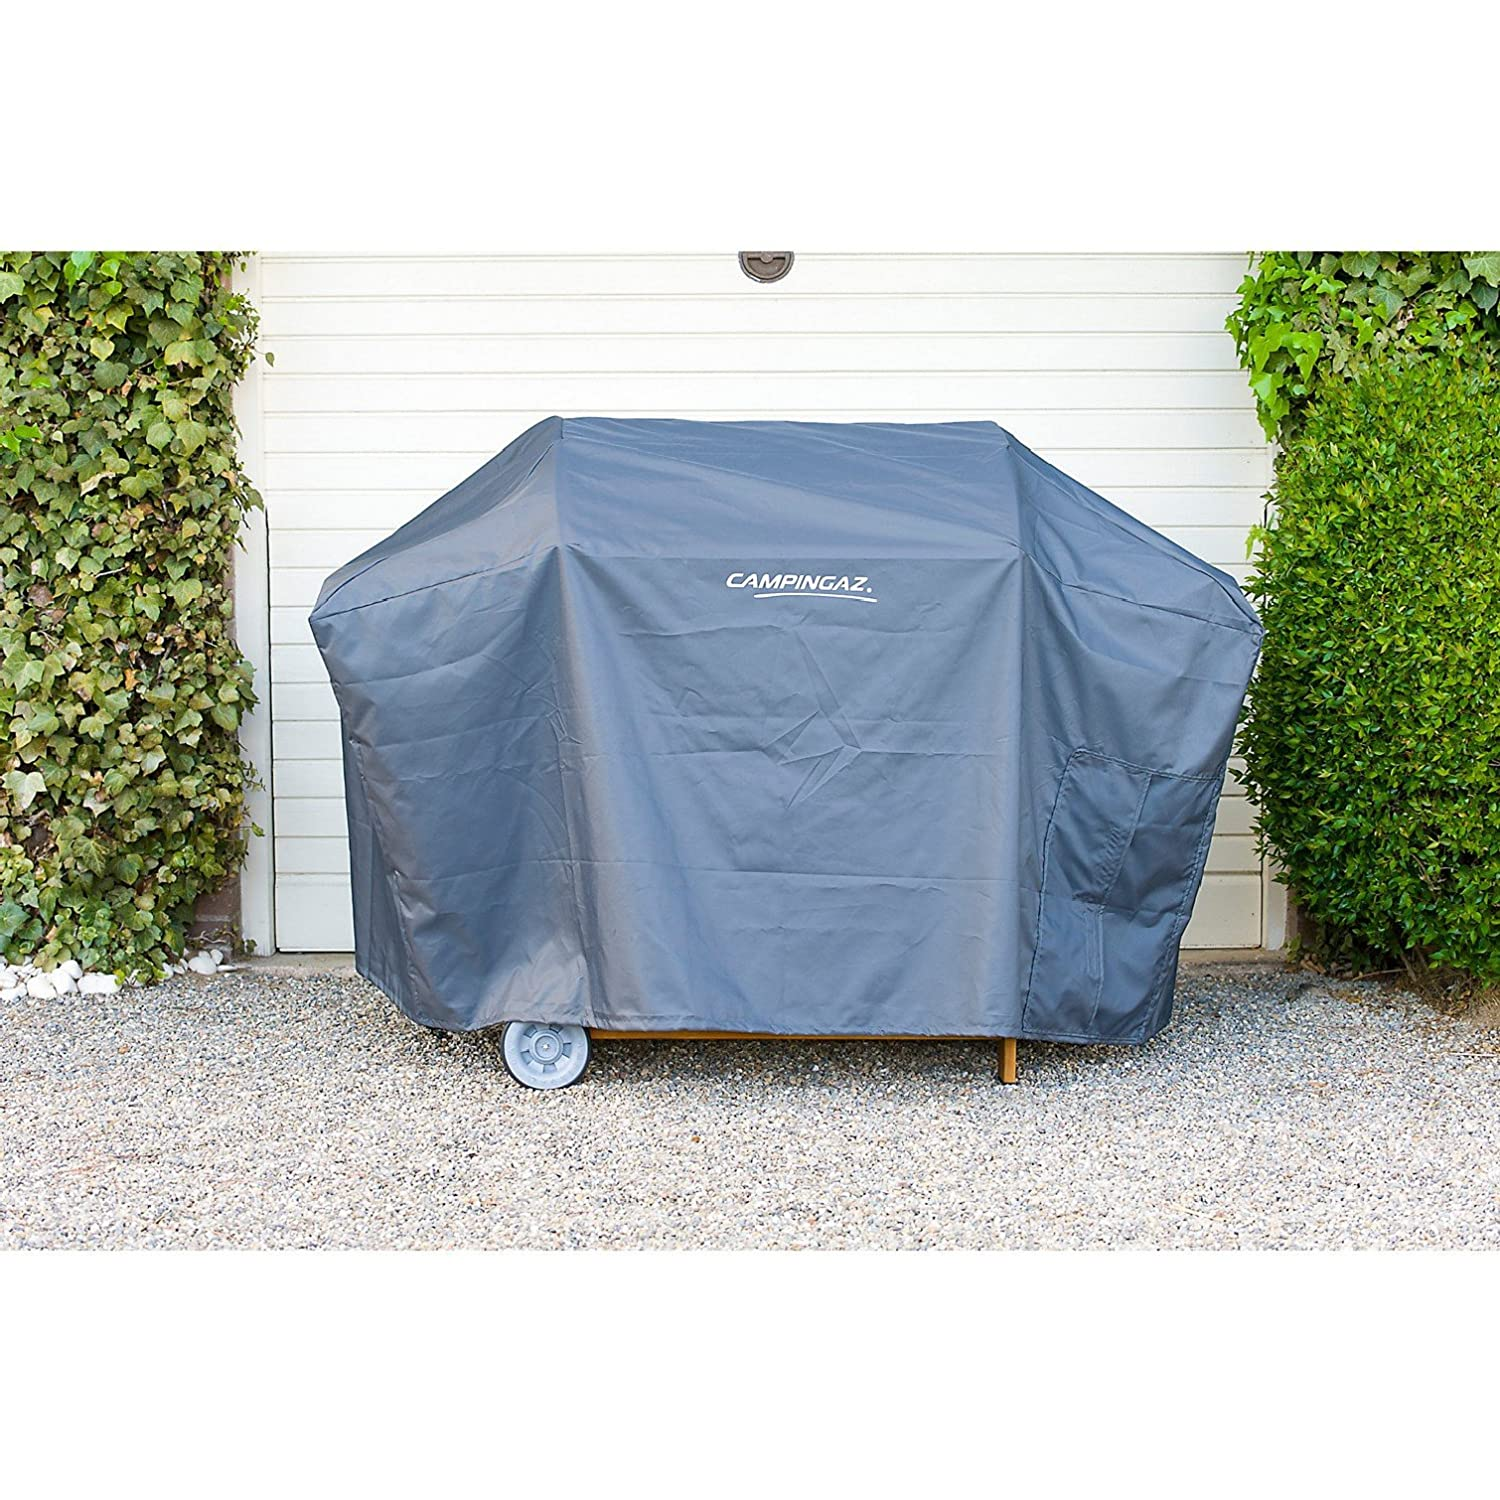 Campingaz BBQ COVER: Amazon.co.uk: Sports & Outdoors